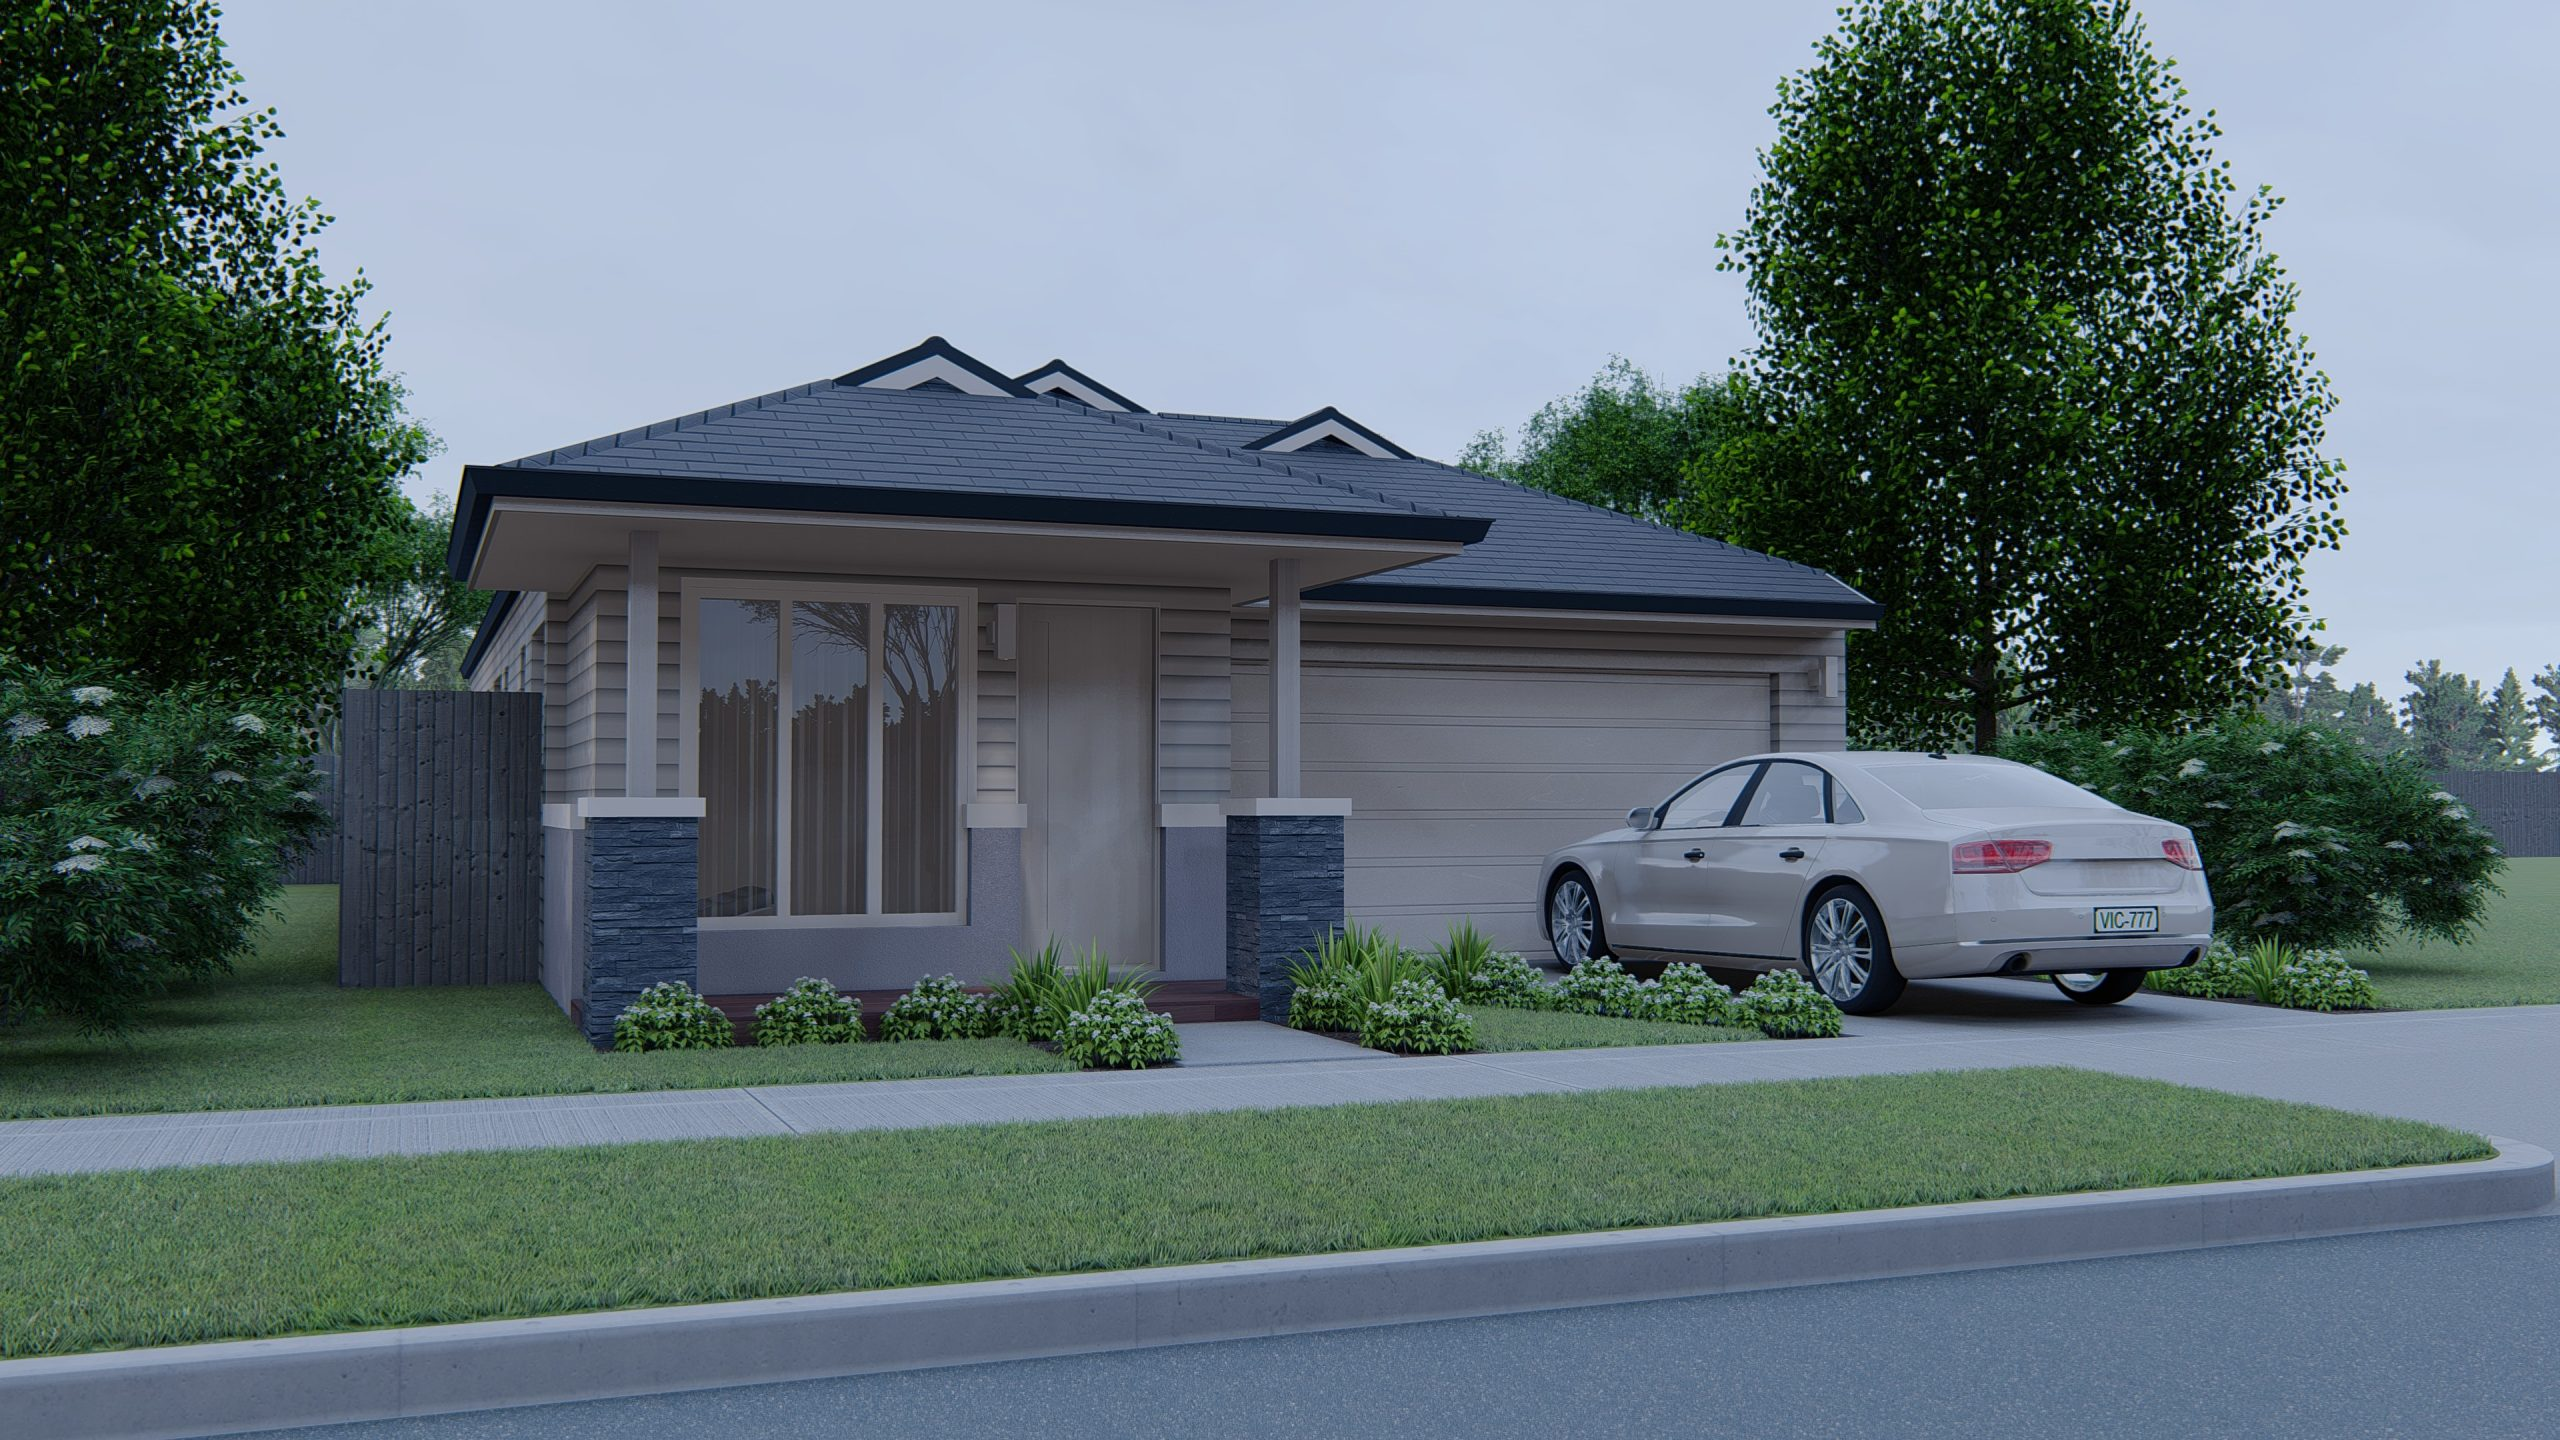 Style 2: 10.5M Width Block with 3 Bedroom Cottage Home